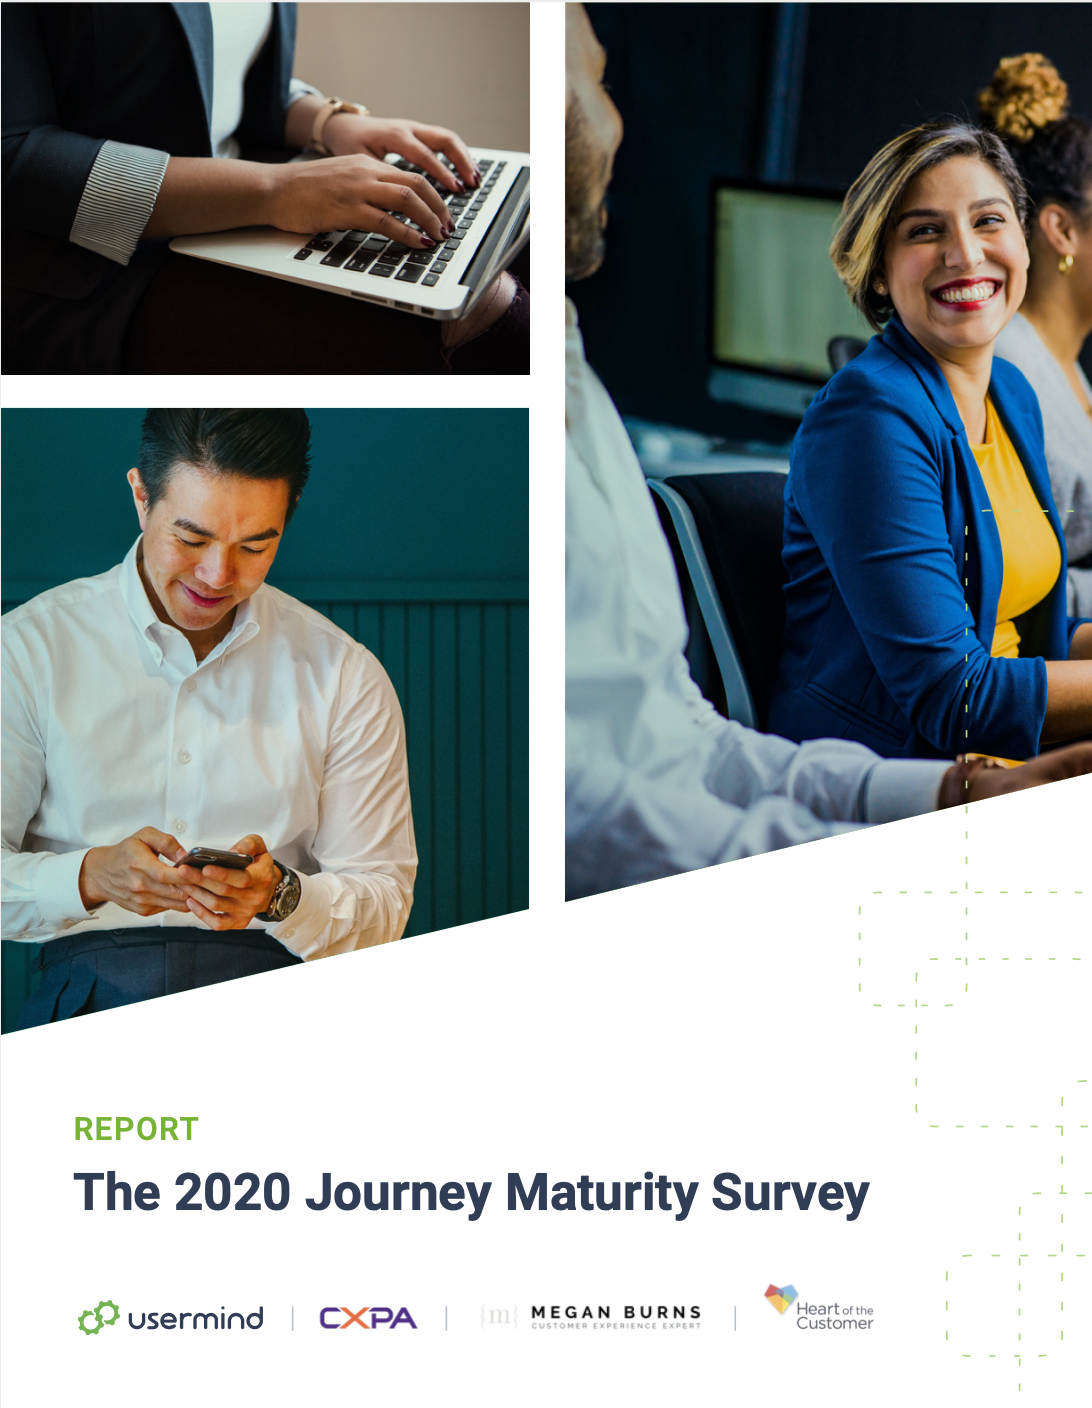 Report: The 2020 Journey Maturity Survey